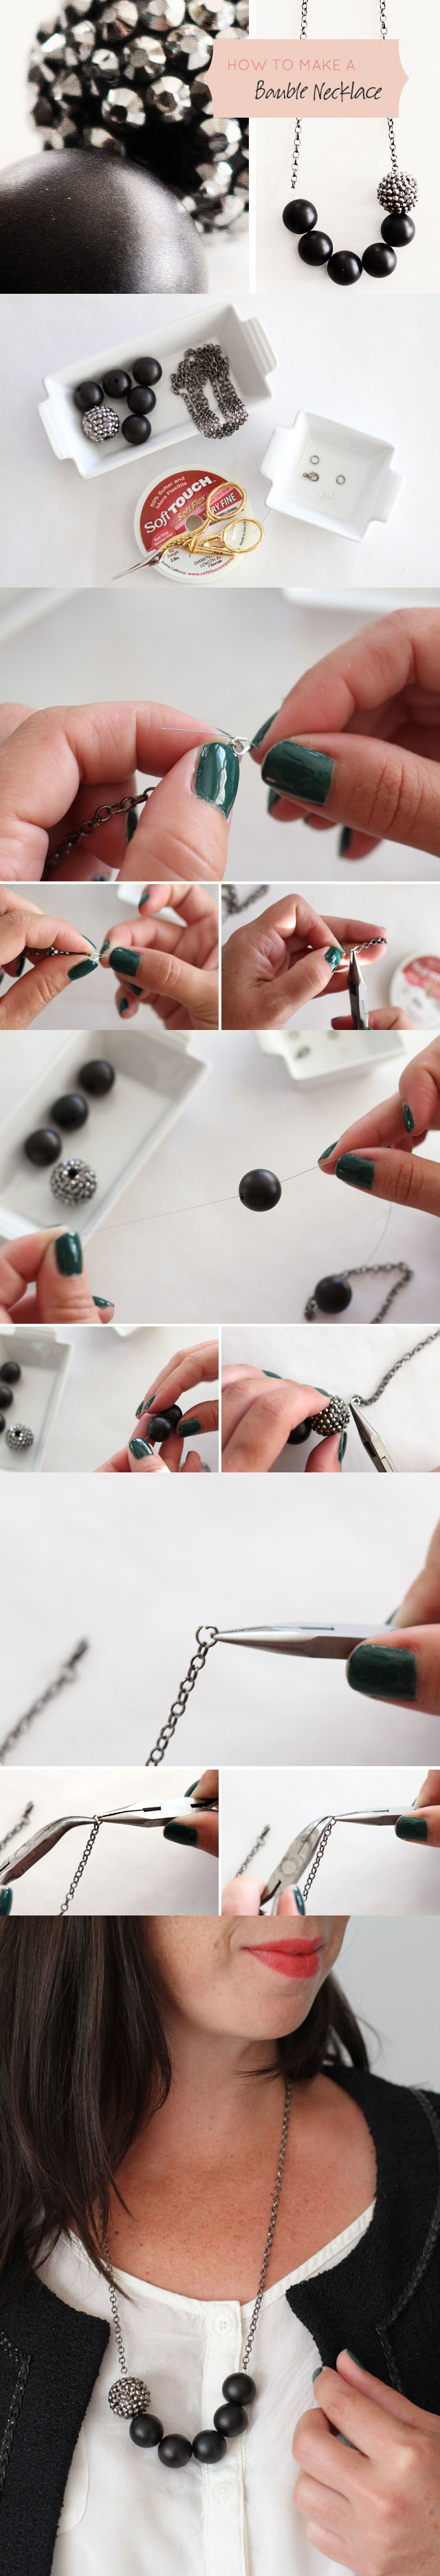 Diy the most beautiful necklace do it yourself ideas how to make a simple bauble necklace solutioingenieria Image collections